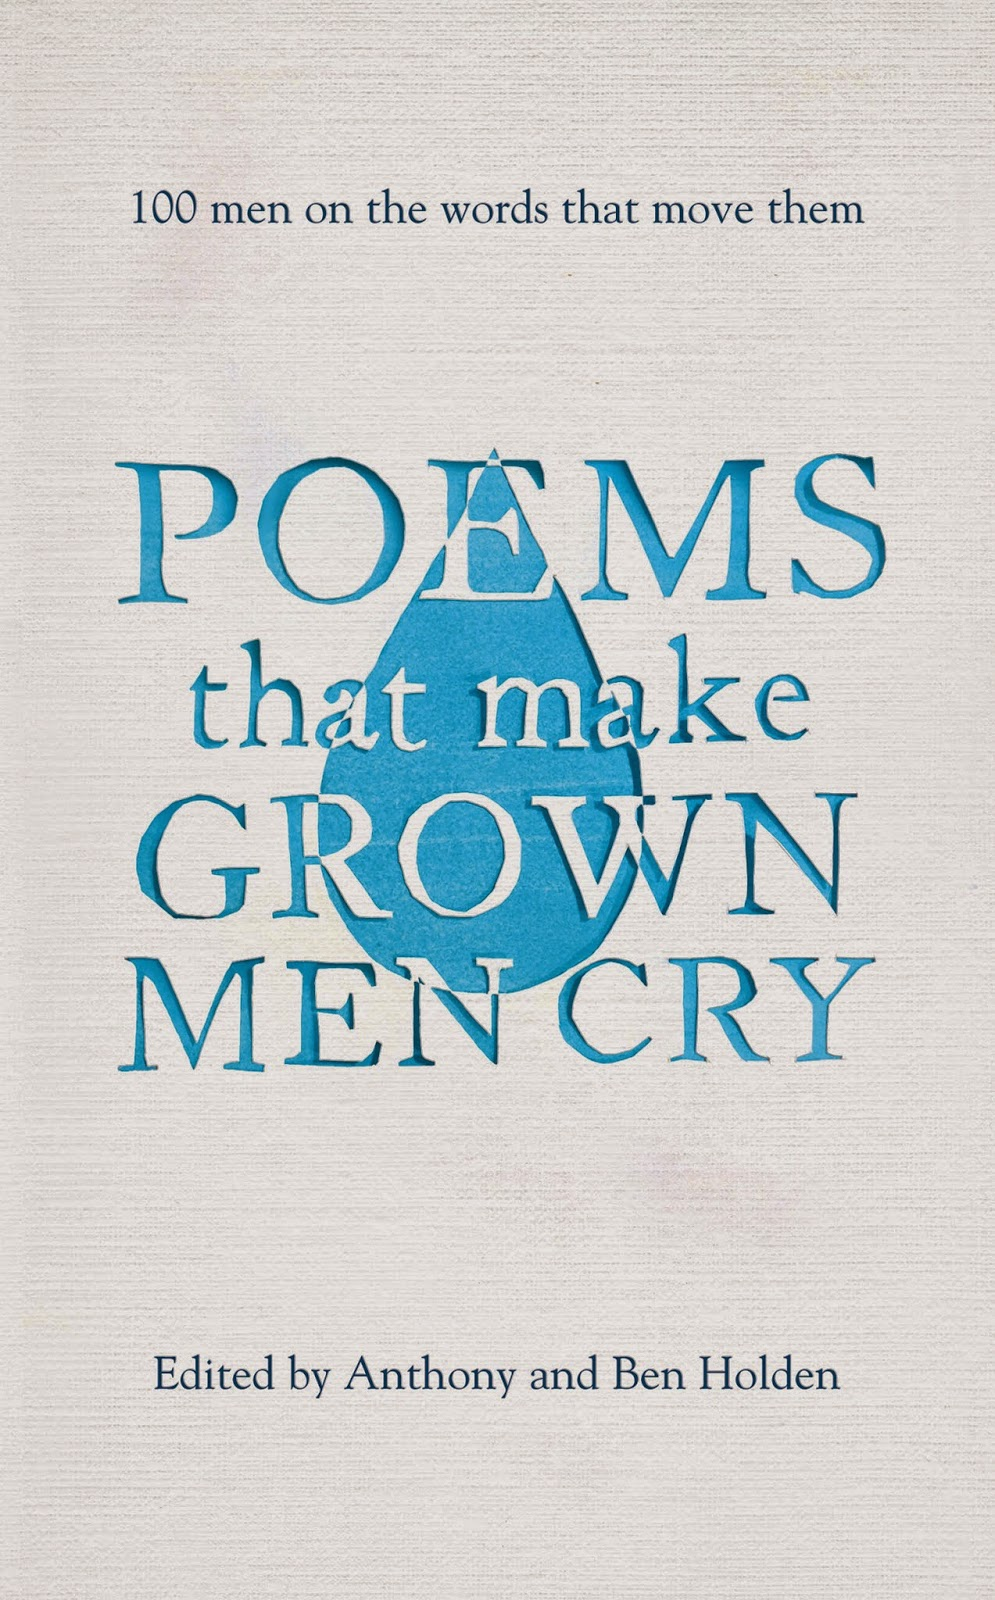 Poems That Make Grown Men Cry by Anthony and Ben Holden